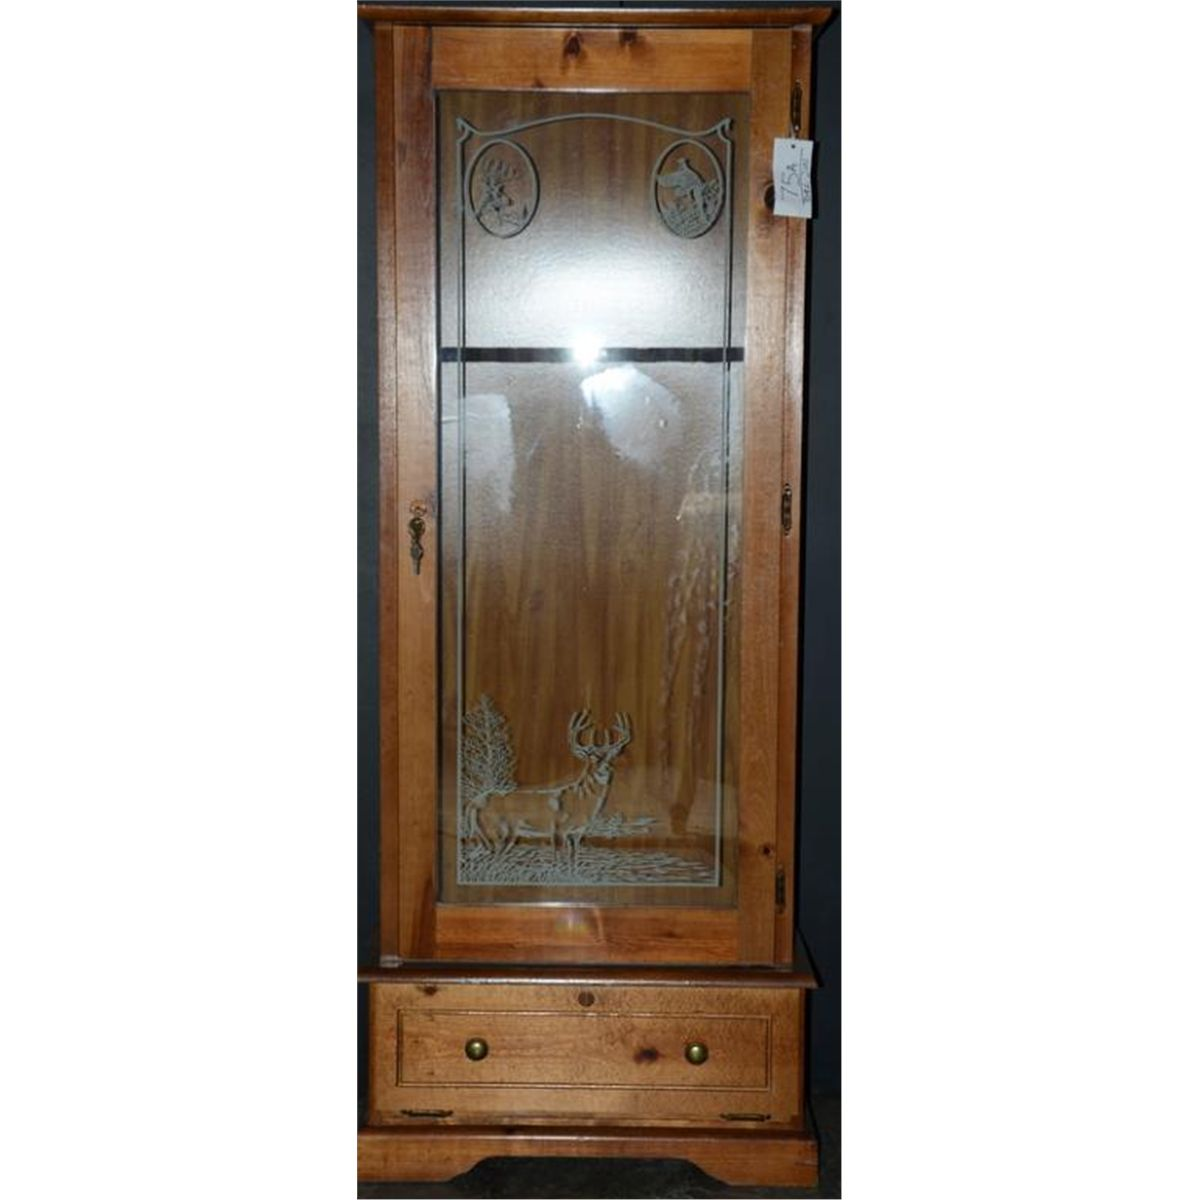 Beautiful long arm gun cabinet made of wood and with a glass front ...